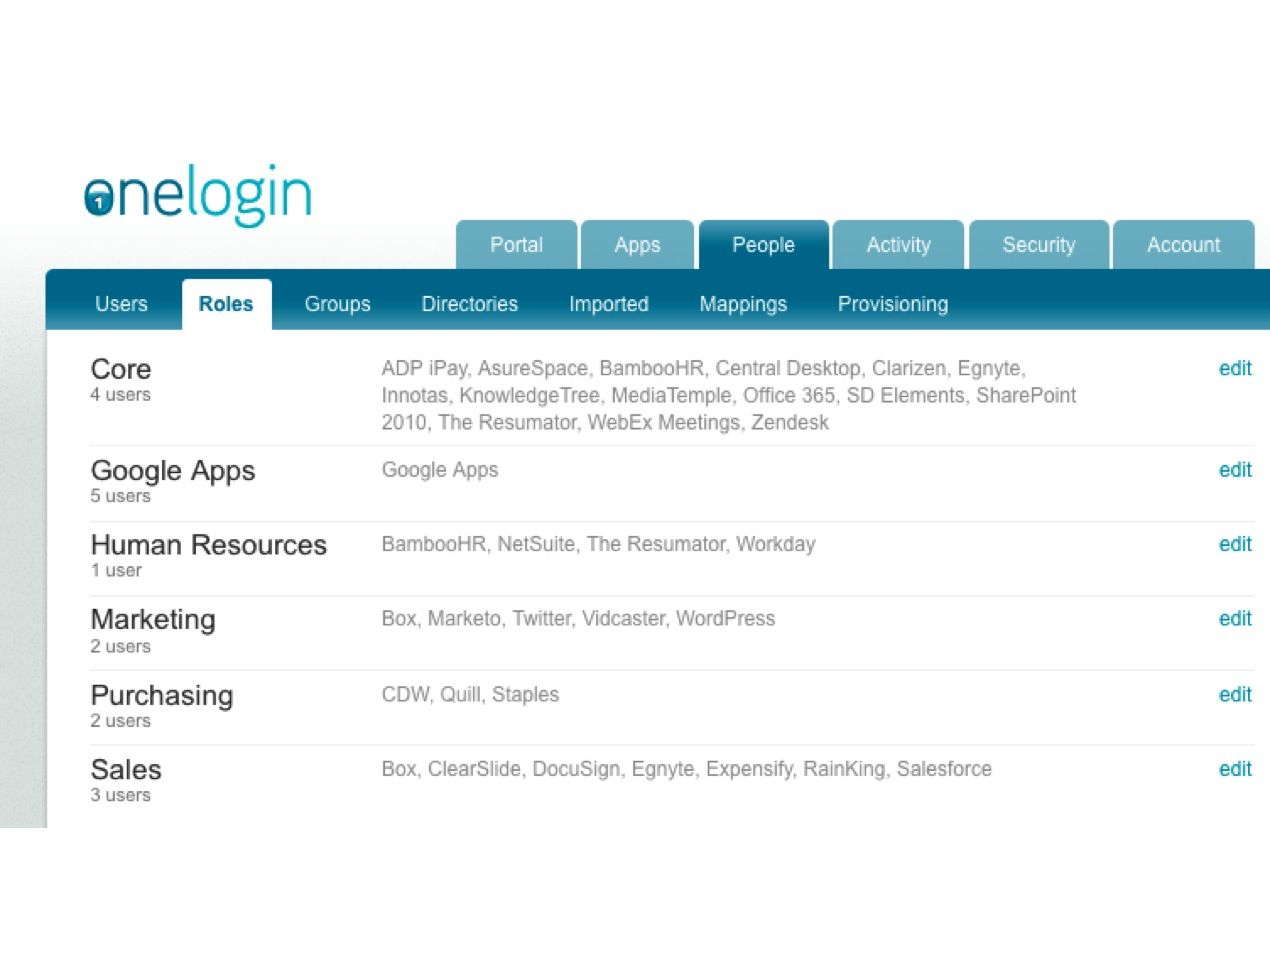 Onelogin Menu Structure Is Very Easy To Navigate And Figure Out Its